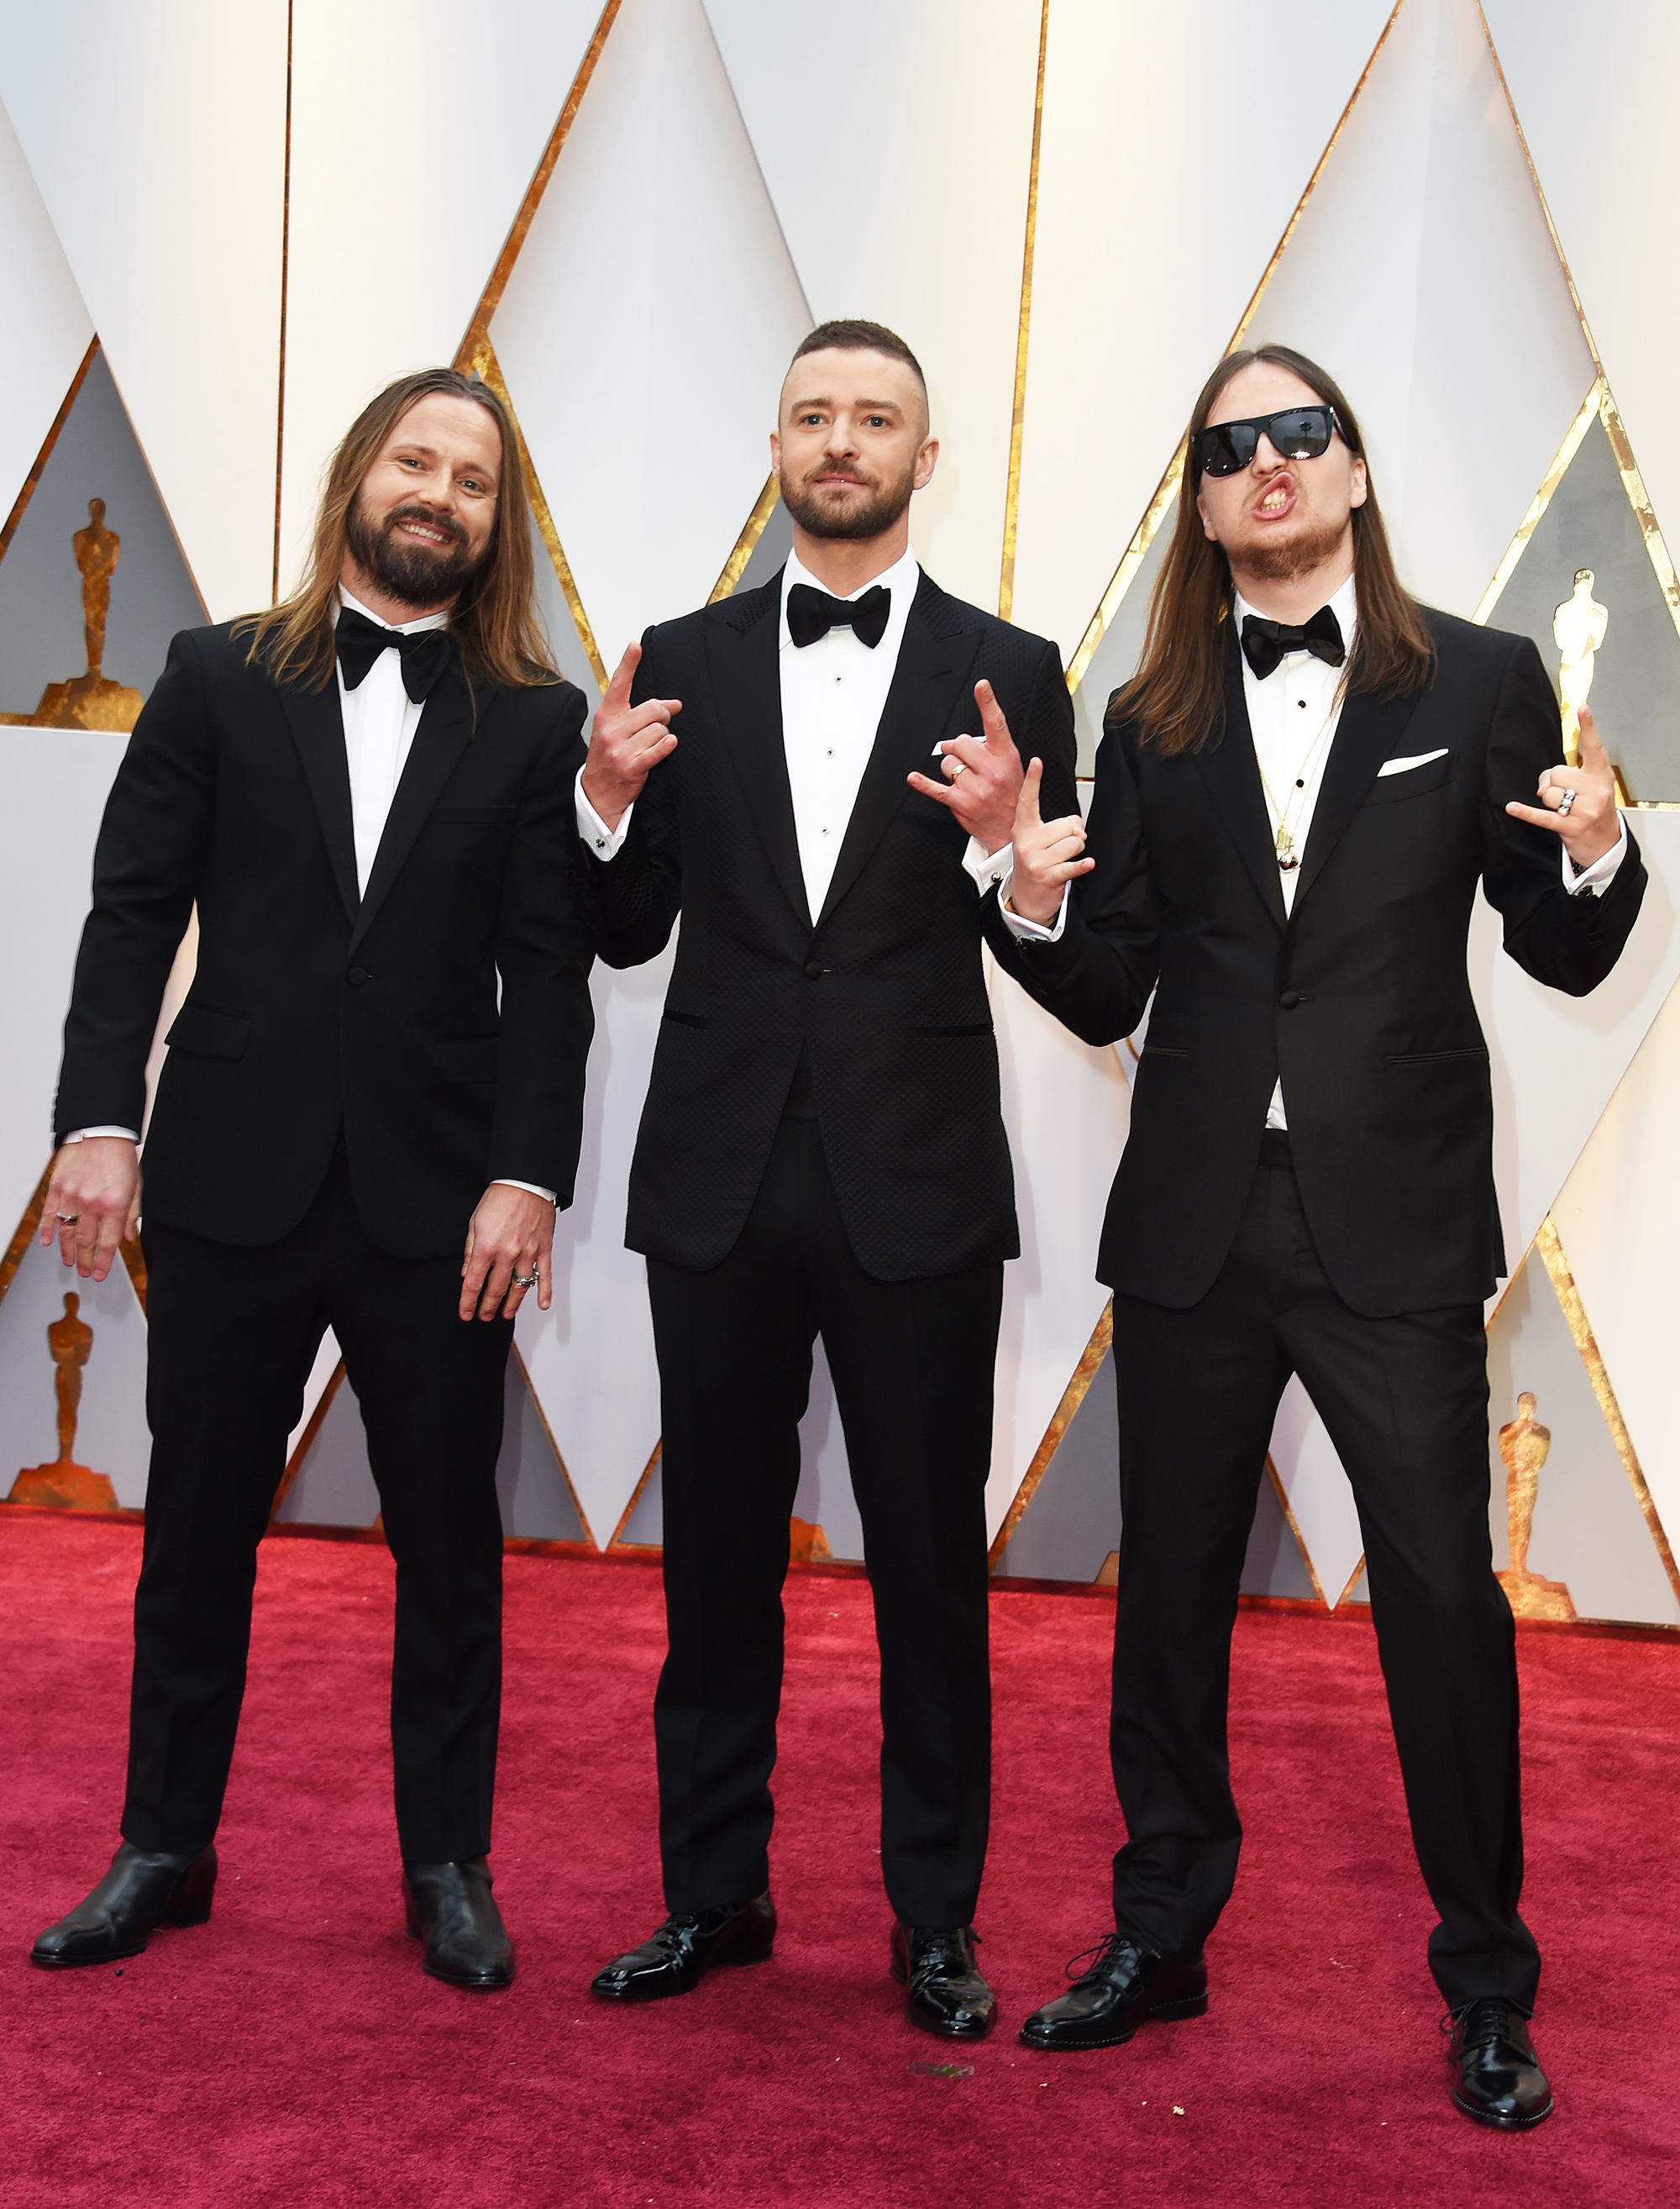 Max Martin, Justin Timberlake and Karl Johan Schuster on the red carpet for the 89th Oscars, on Feb. 26, 2017 in Hollywood, Calif.